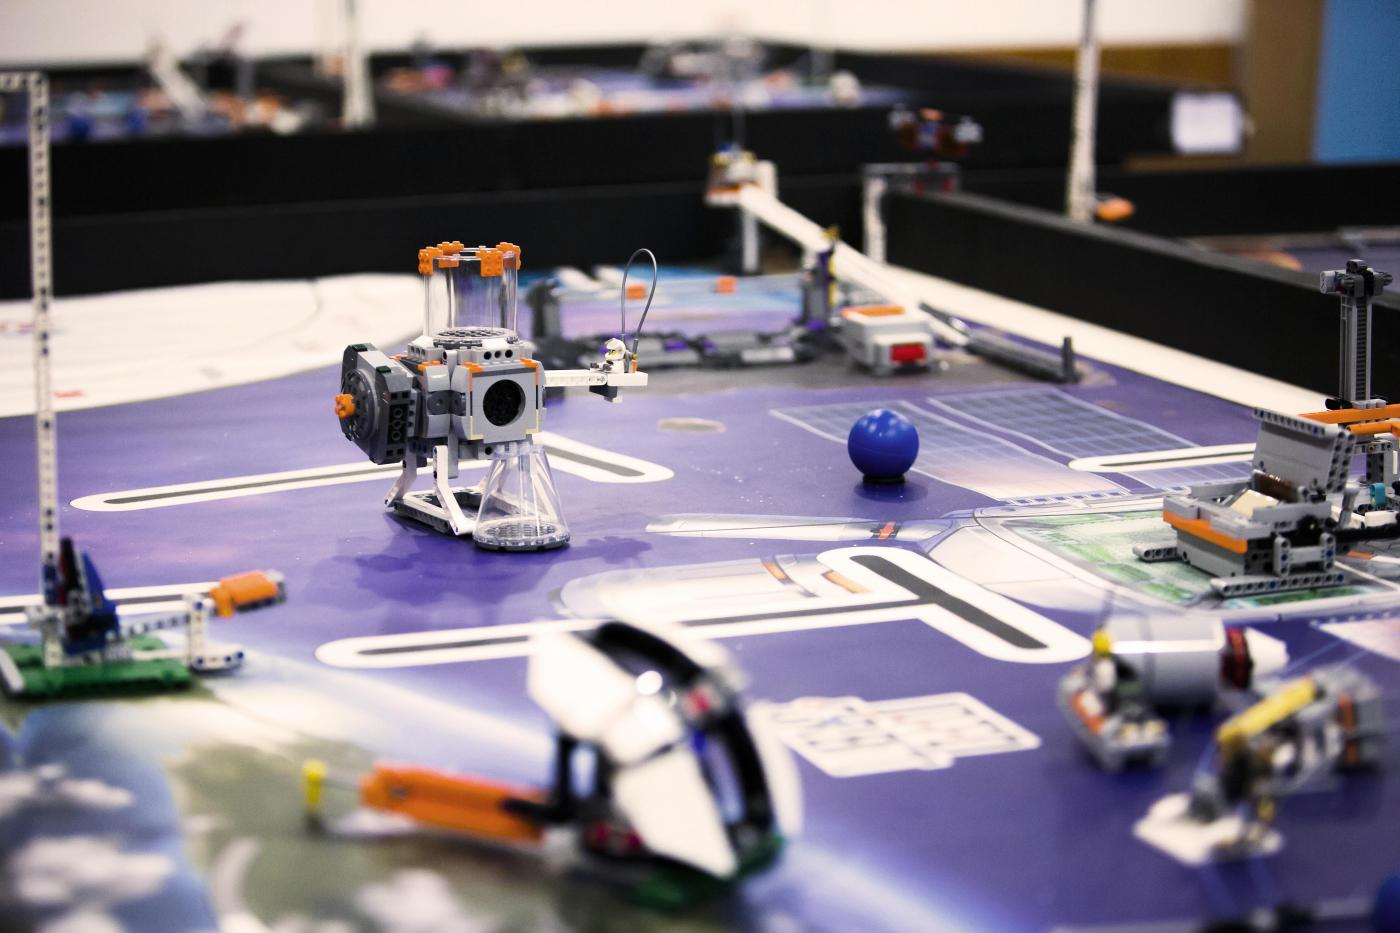 First Lego League elimination round held in La Salle-URL a